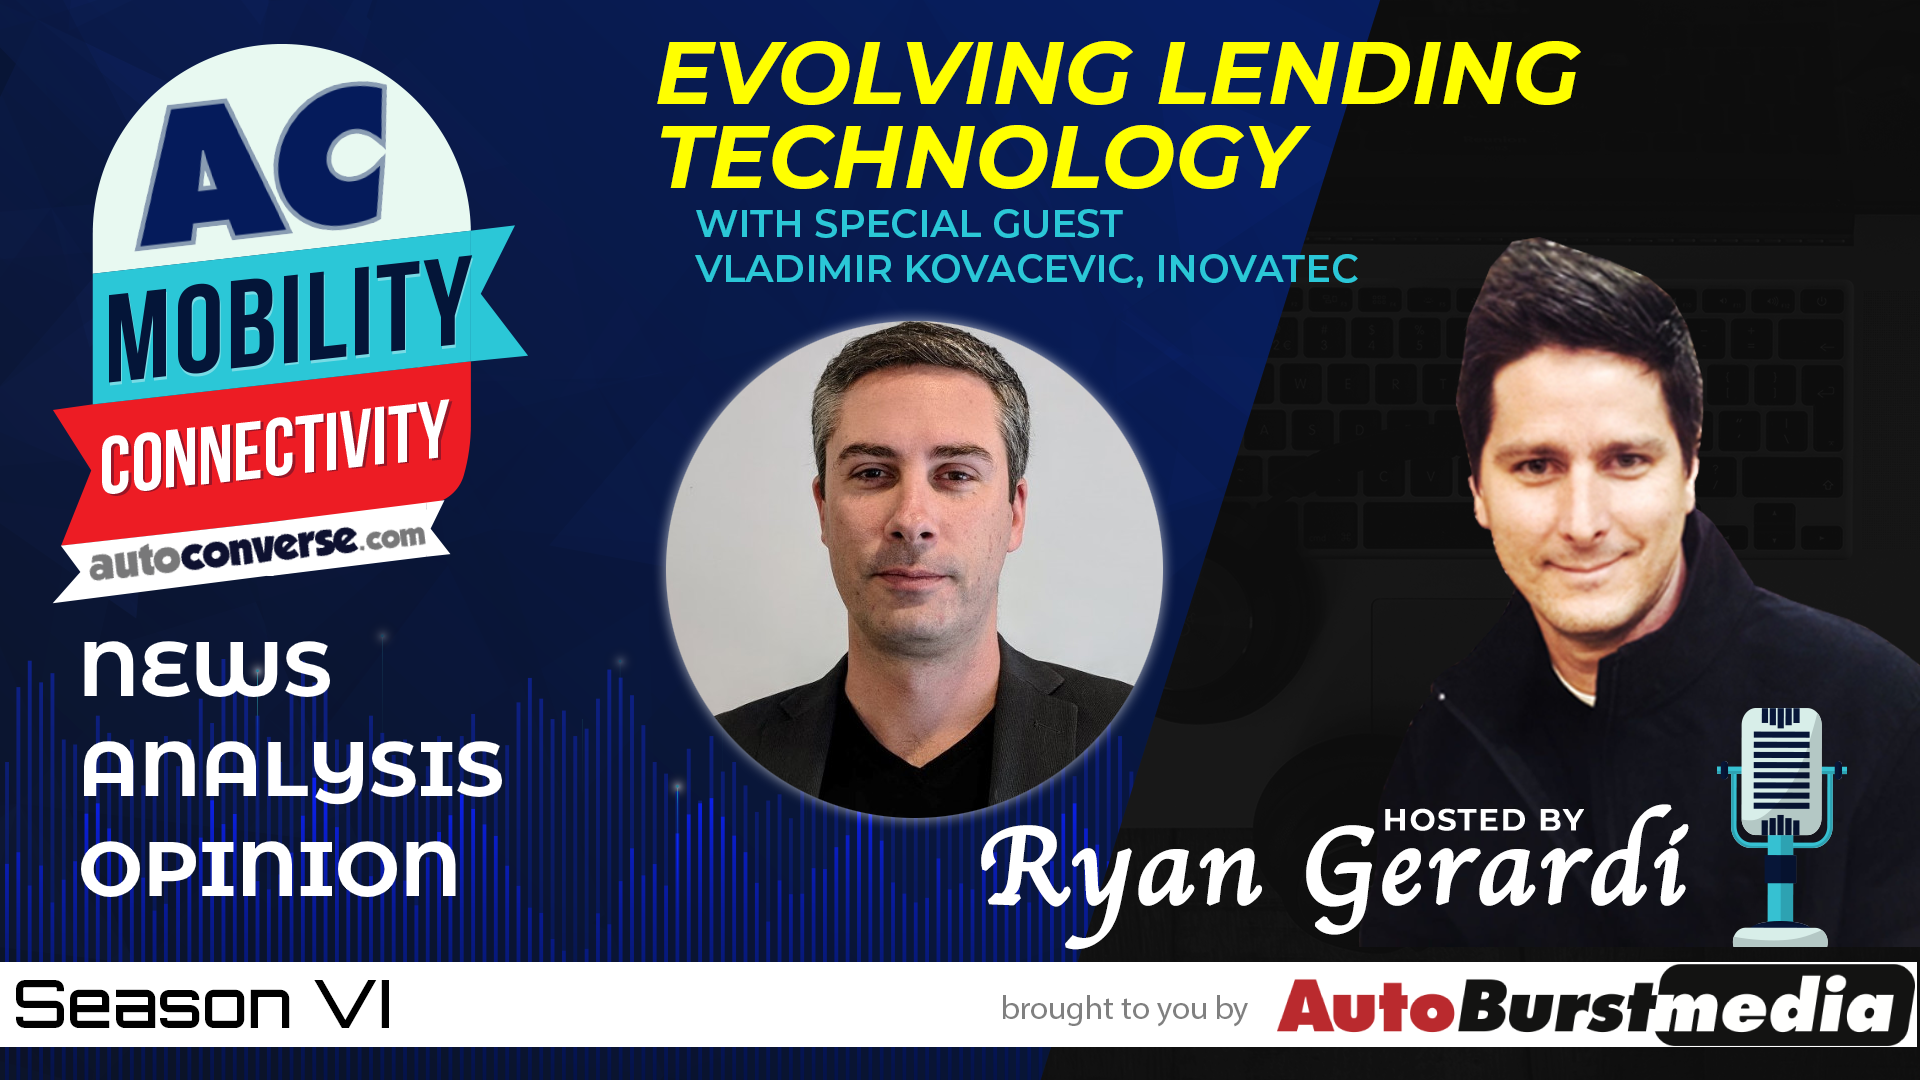 WED FEB 26. MTC Show. Evolving Lending Technology Is Reshaping the Way Consumers Transact in Private Automotive Sales